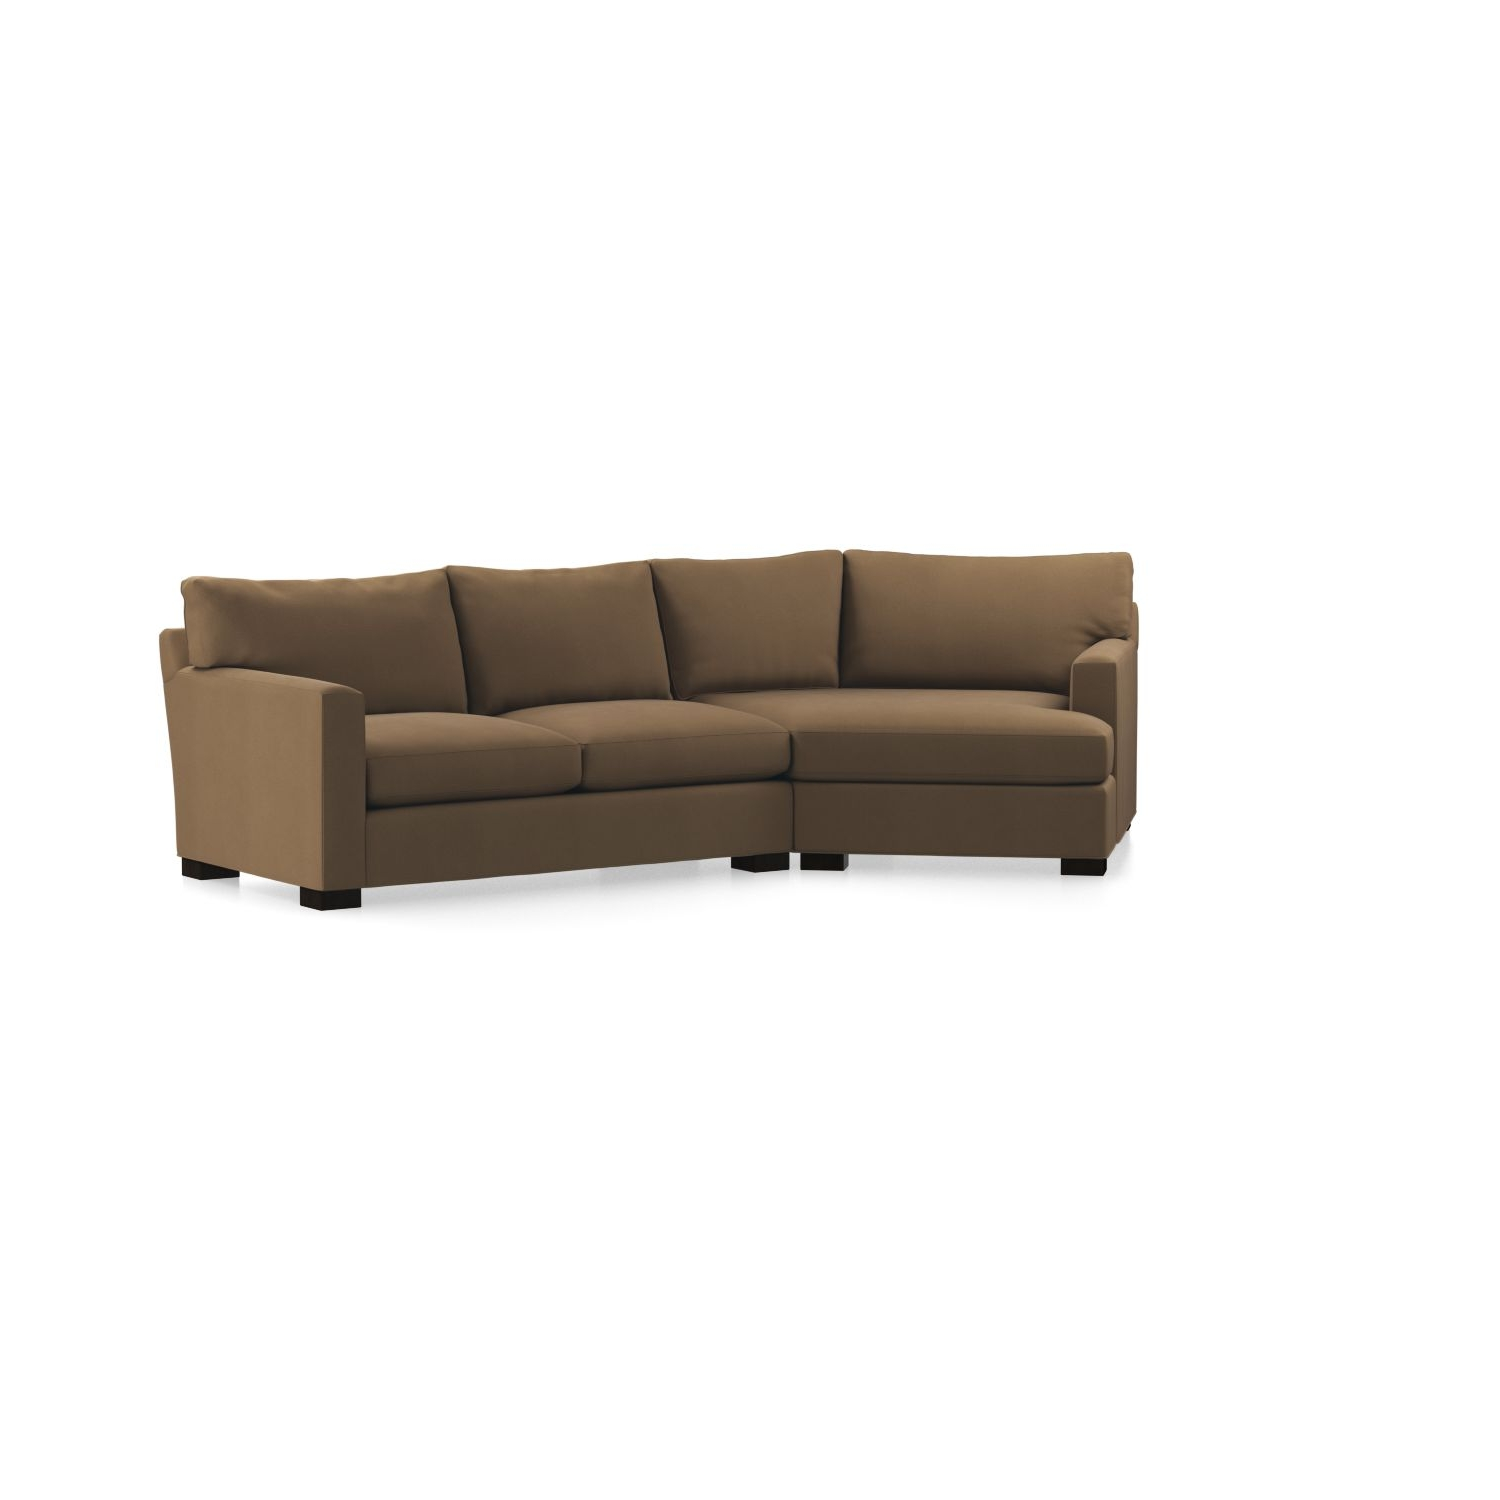 Newest Axis Ii 2 Piece Left Arm Angled Chaise Sectional Sofa In Axis Within Angled Chaise Sofas (View 8 of 15)